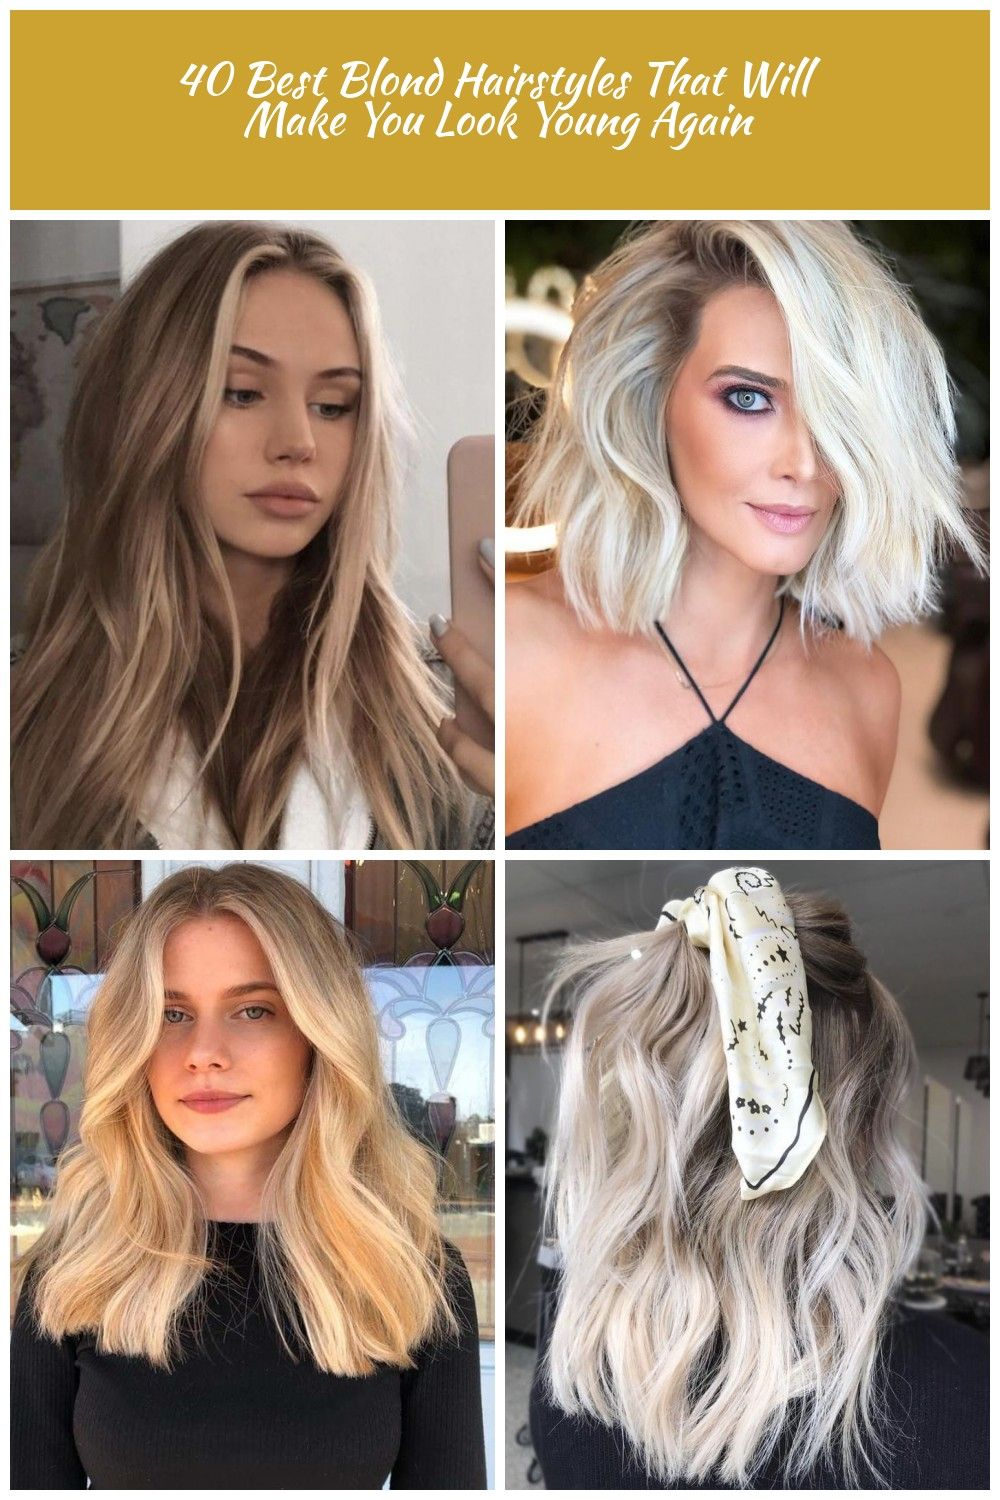 40 Amazing Blonde Hair Colors Blonde Hair 40 Best Blond Hairstyles That Will Make You Look Young Again Blonde Hair Color Hair Styles Long Hair Styles